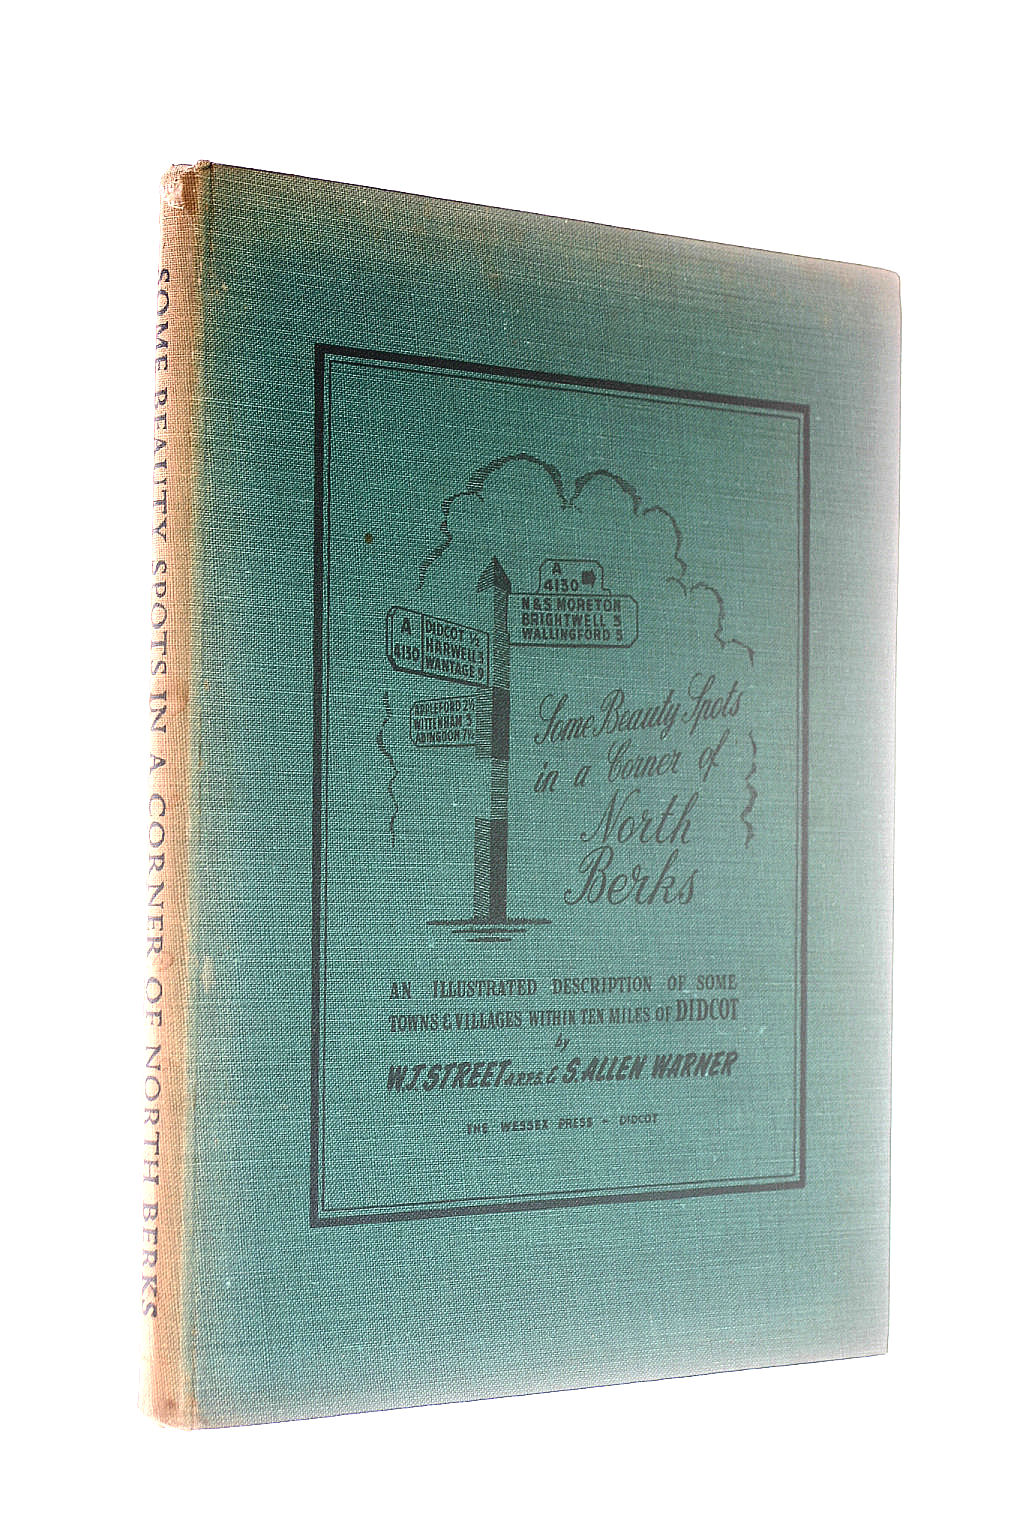 Image for Some beauty spots in a corner of North Berks: An illustrated description of some towns & villages within ten miles of Didcot; with commentaries on the ... visiblefrom points on the neighbouring Downs